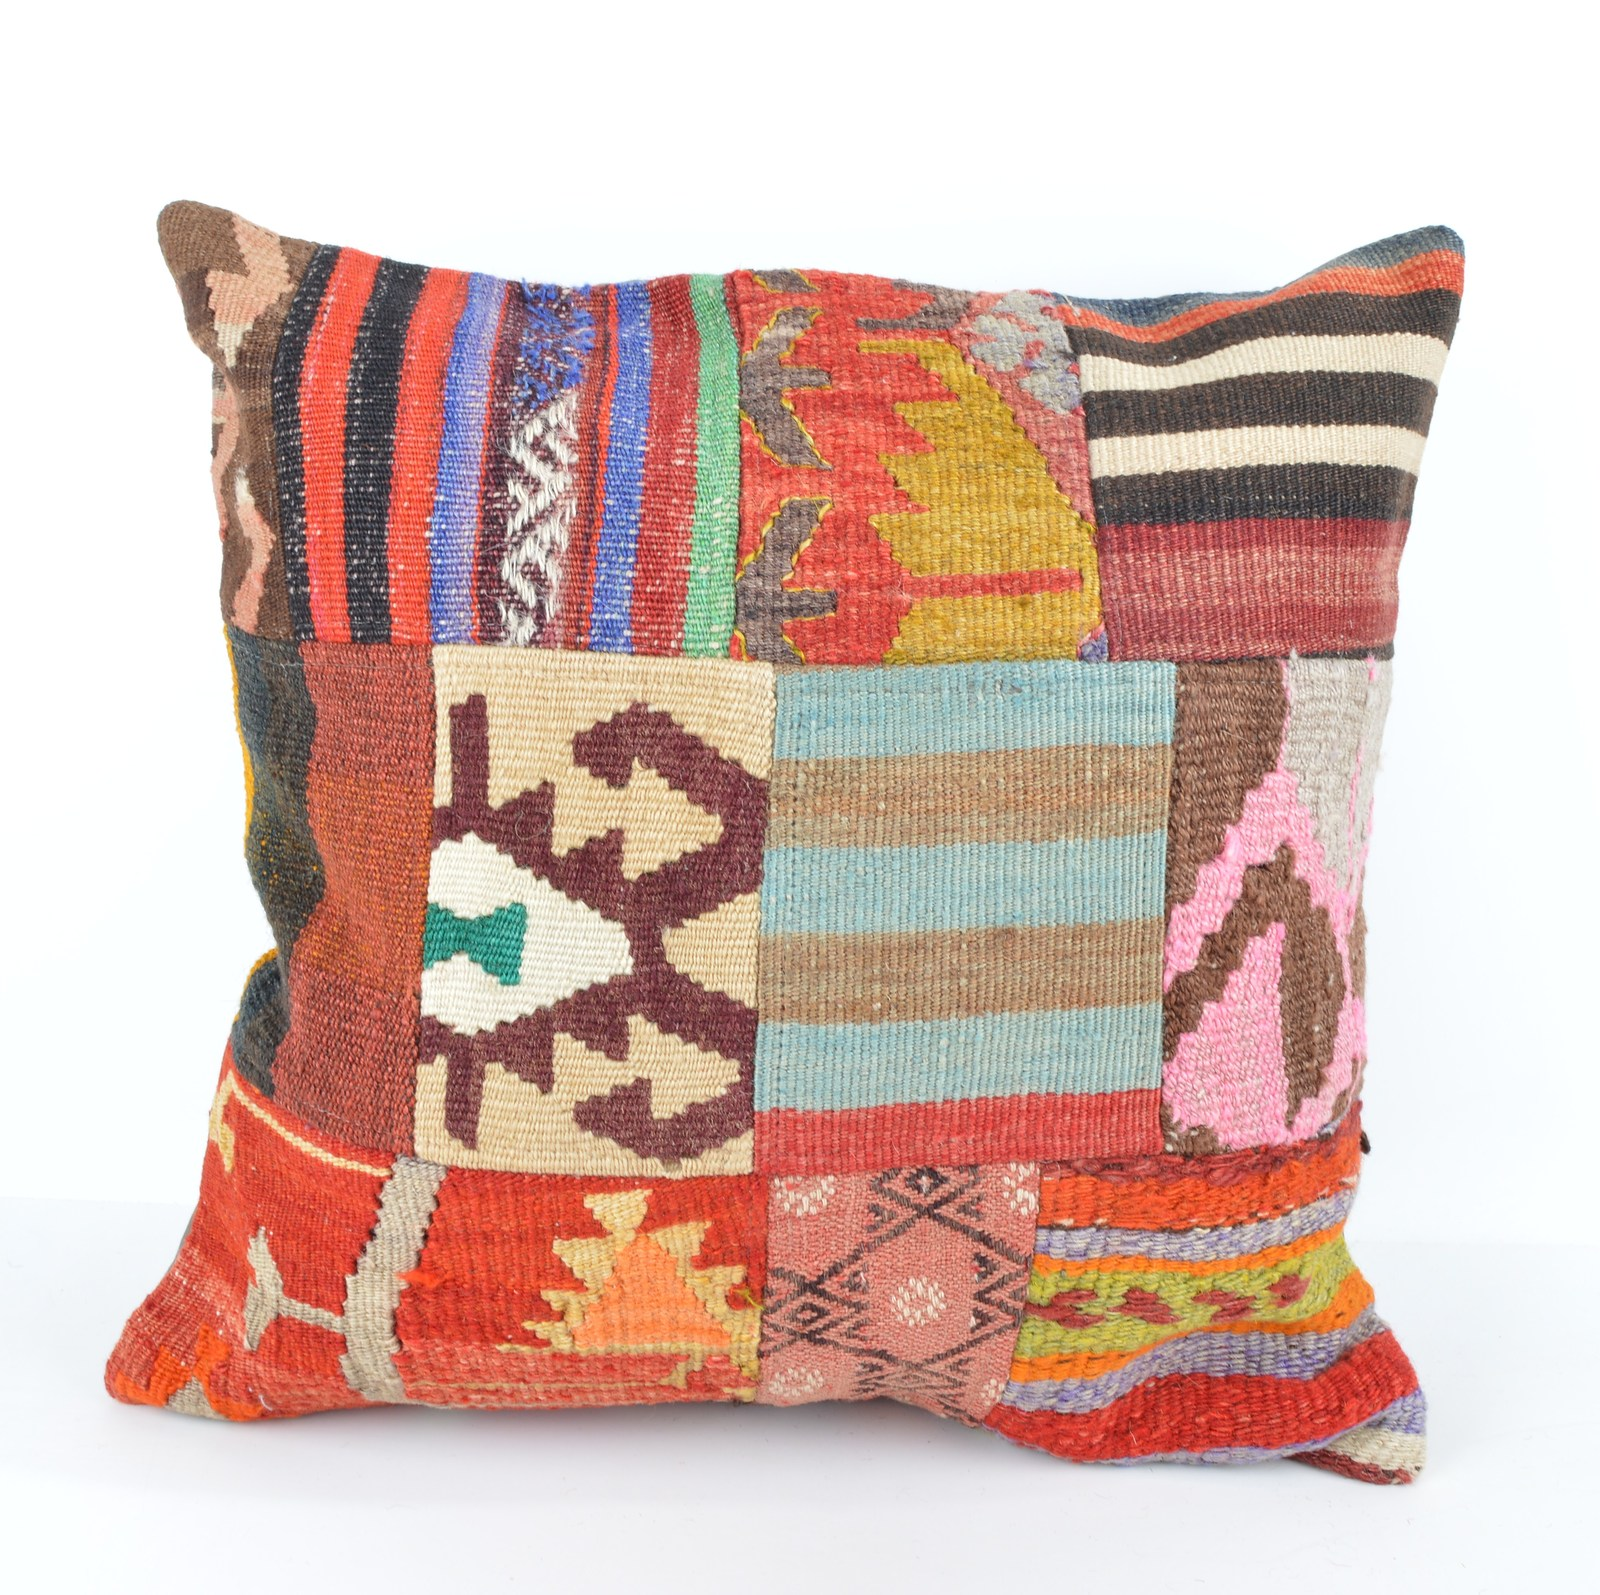 Large Colorful Kelim Patchwork Cushions from Turkey,Woven Couch Pillows 18x18 - Pillows